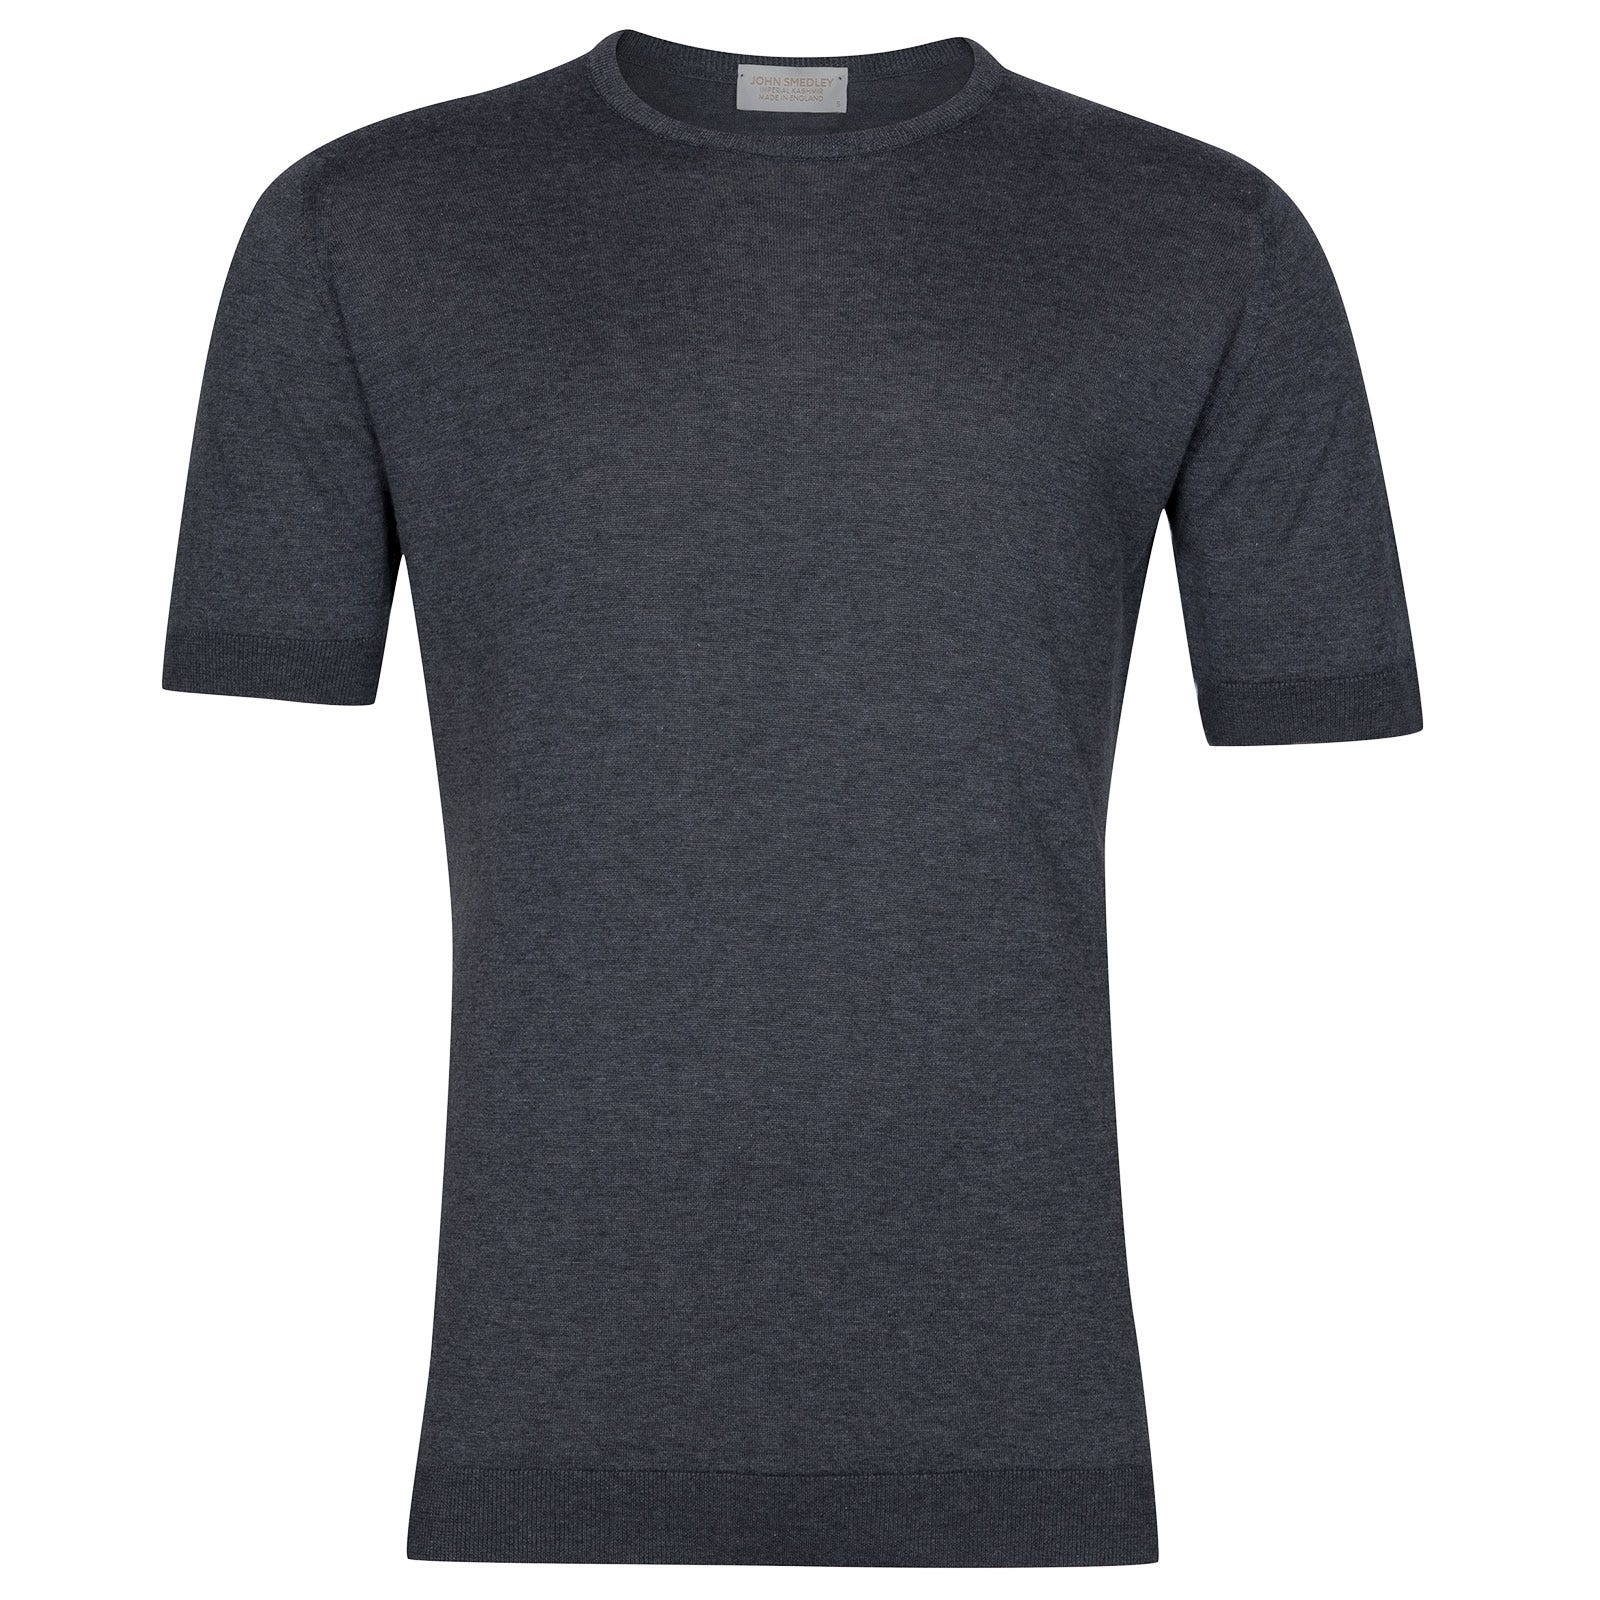 John Smedley Stonwell in Charcoal T-Shirt-SML